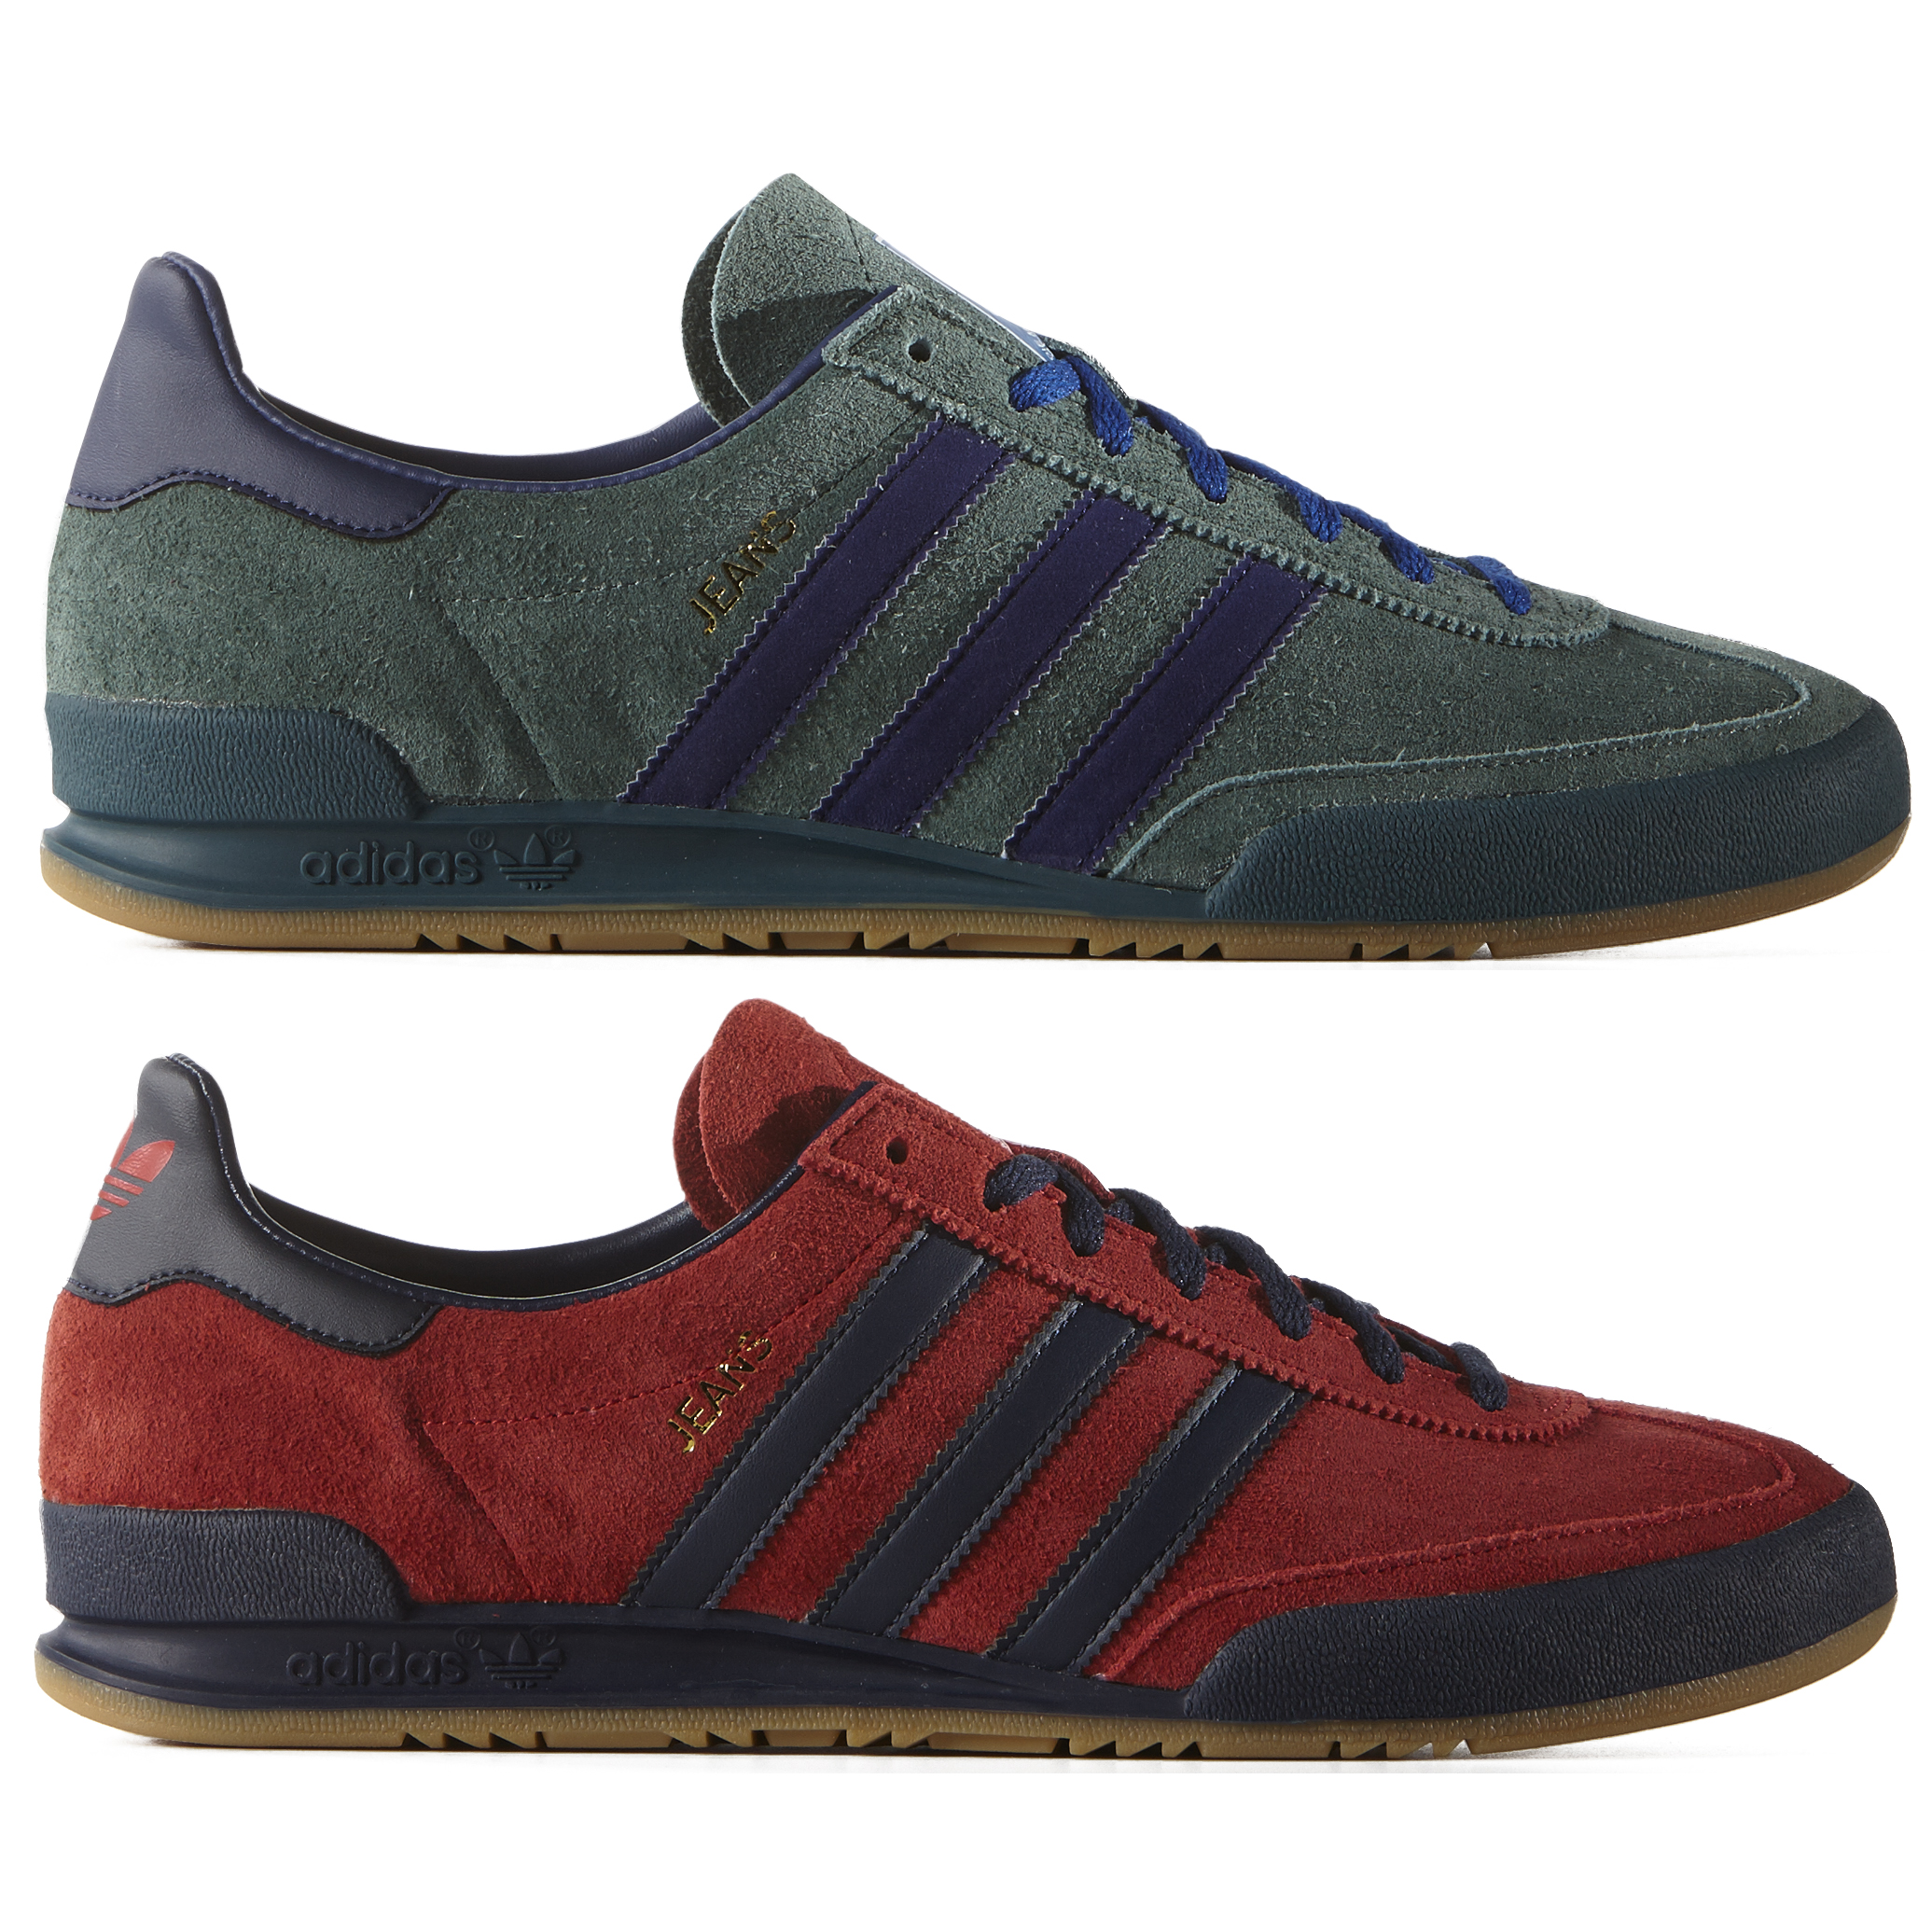 jeans shoes adidas